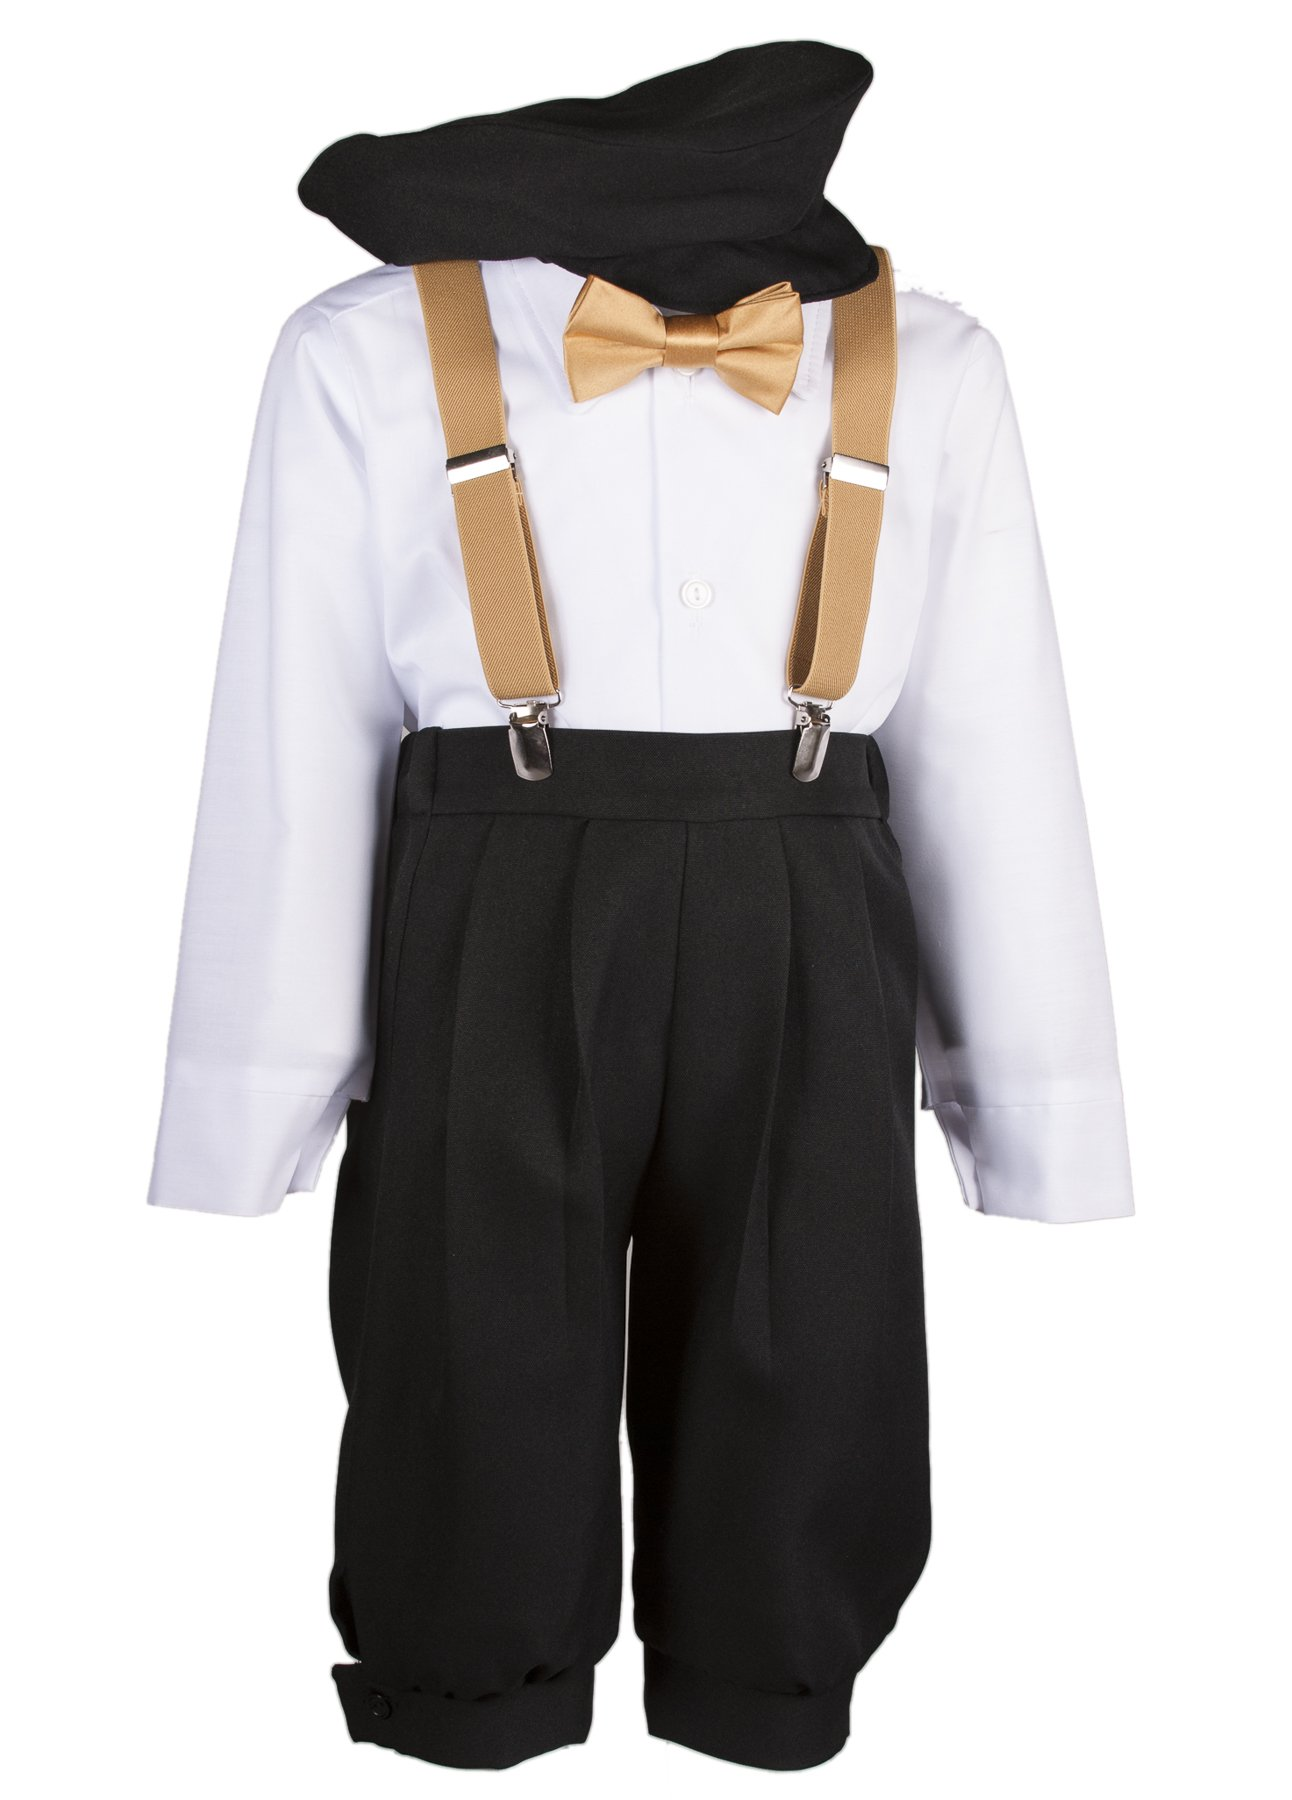 Boys Black Knickers Set Pageboy Cap Antique Gold Suspenders & Bow Tie (4 Boys)